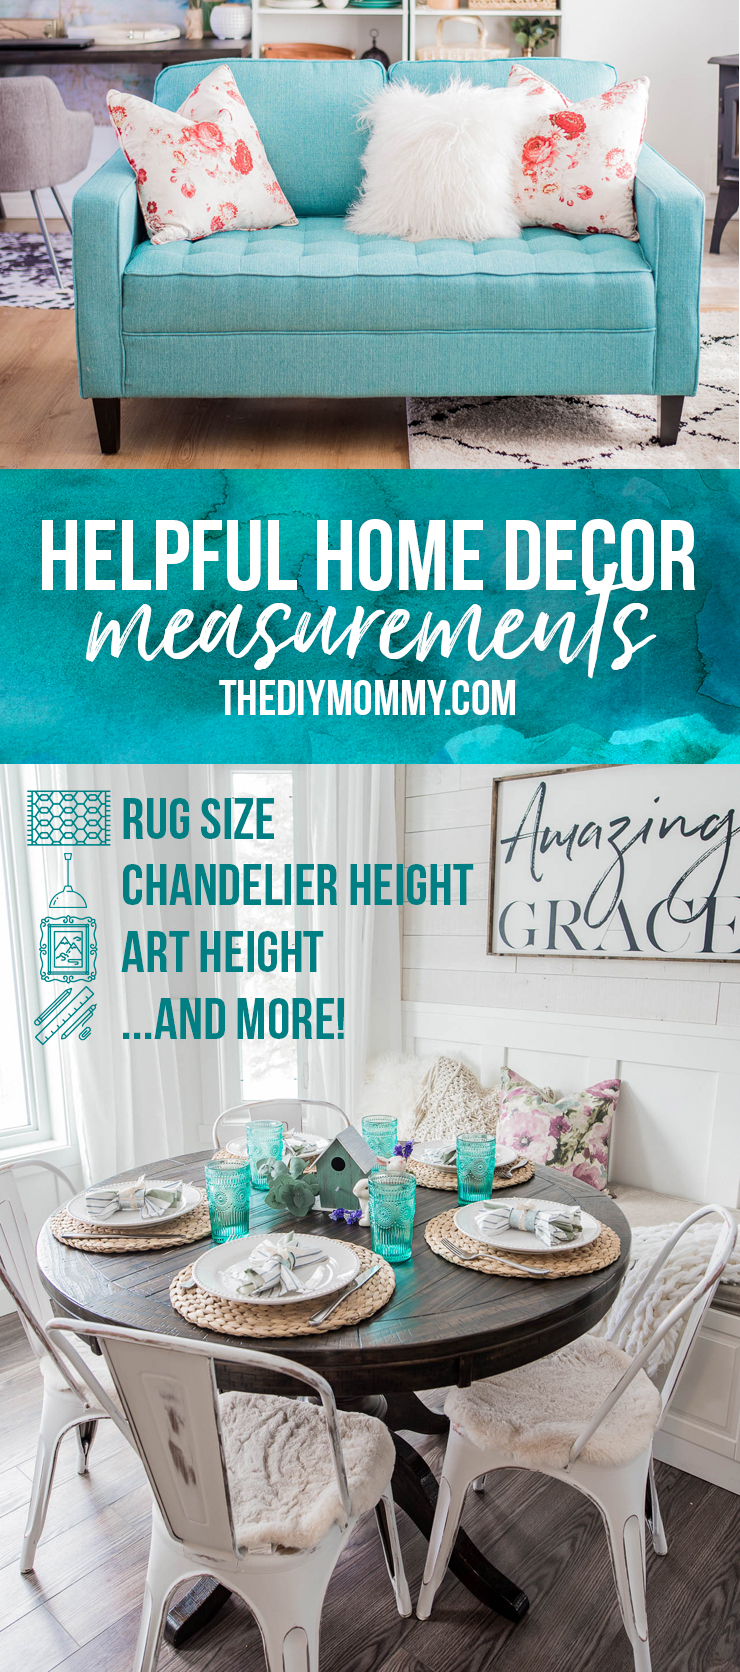 Helpful Home Decor Measurements